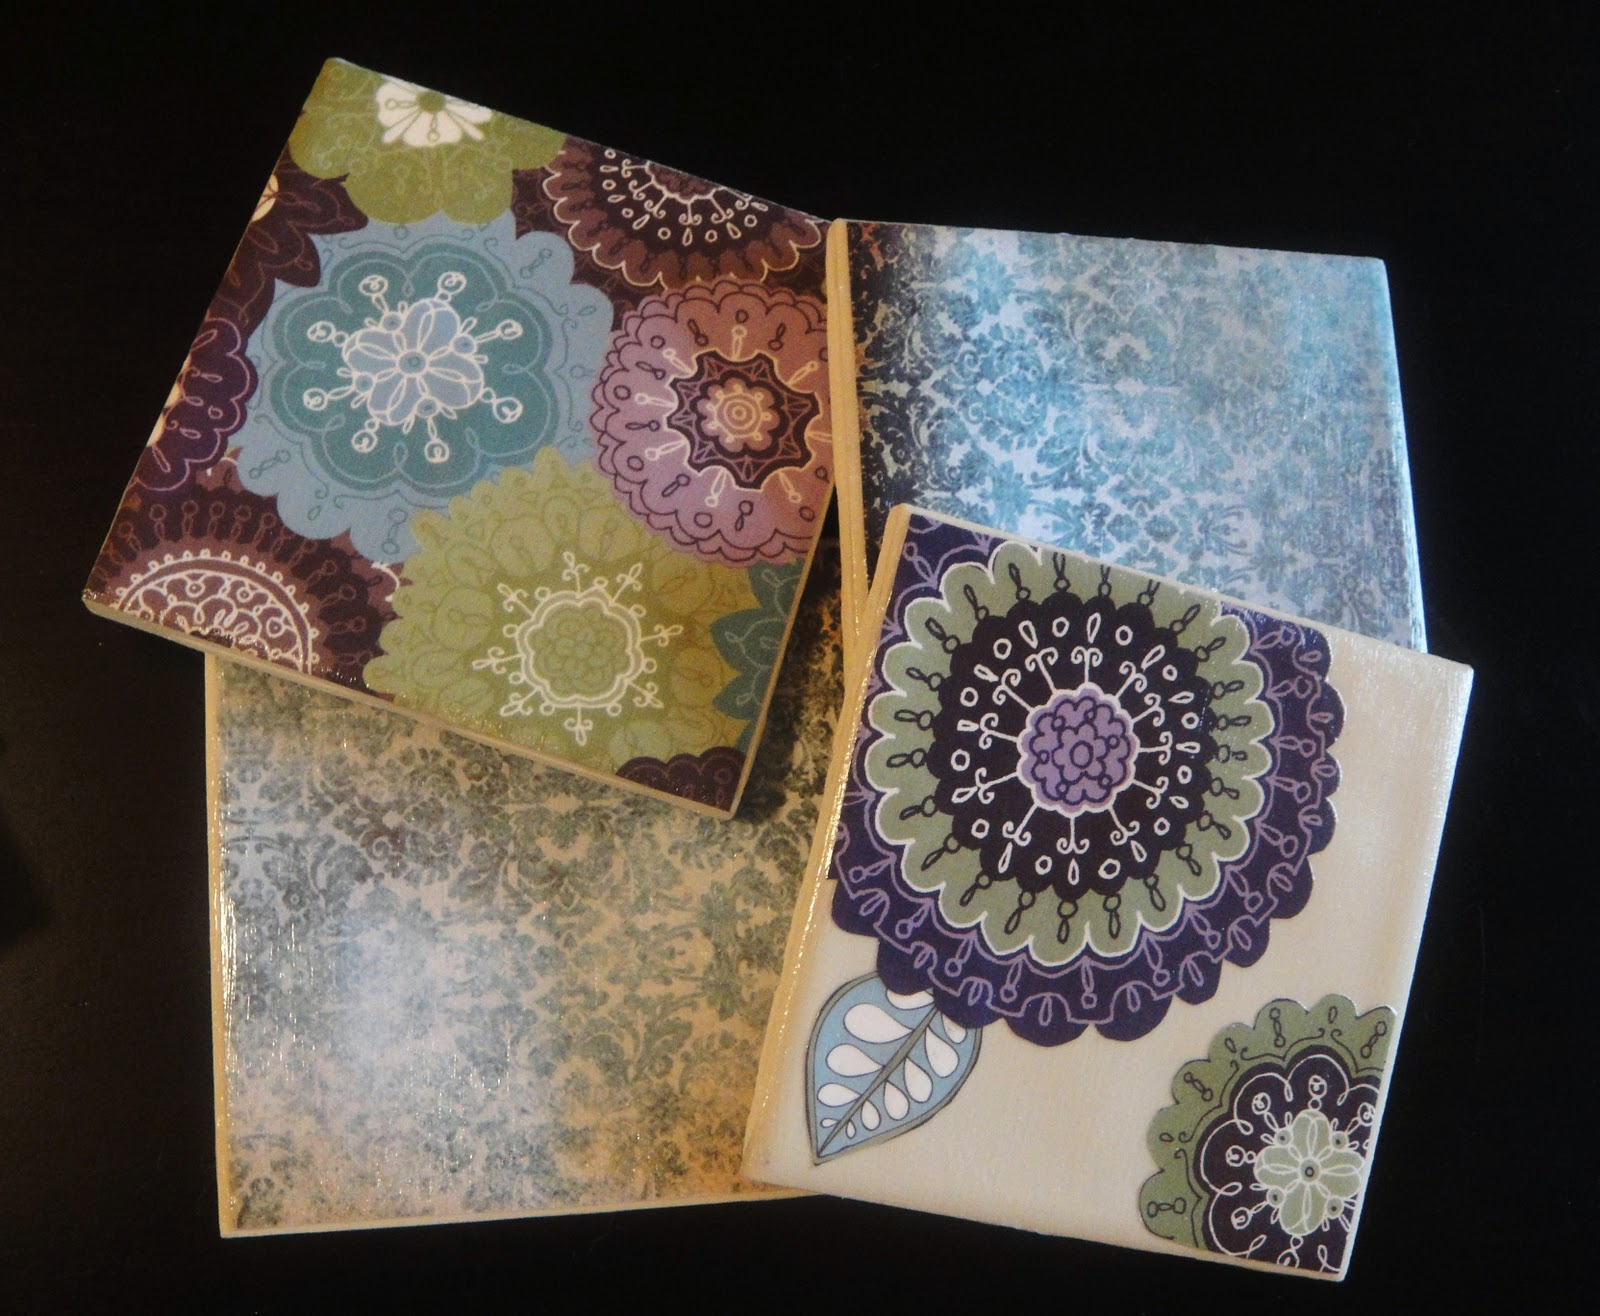 Tristinandcompany the ramseys finally have coasters for Diy decor crafts